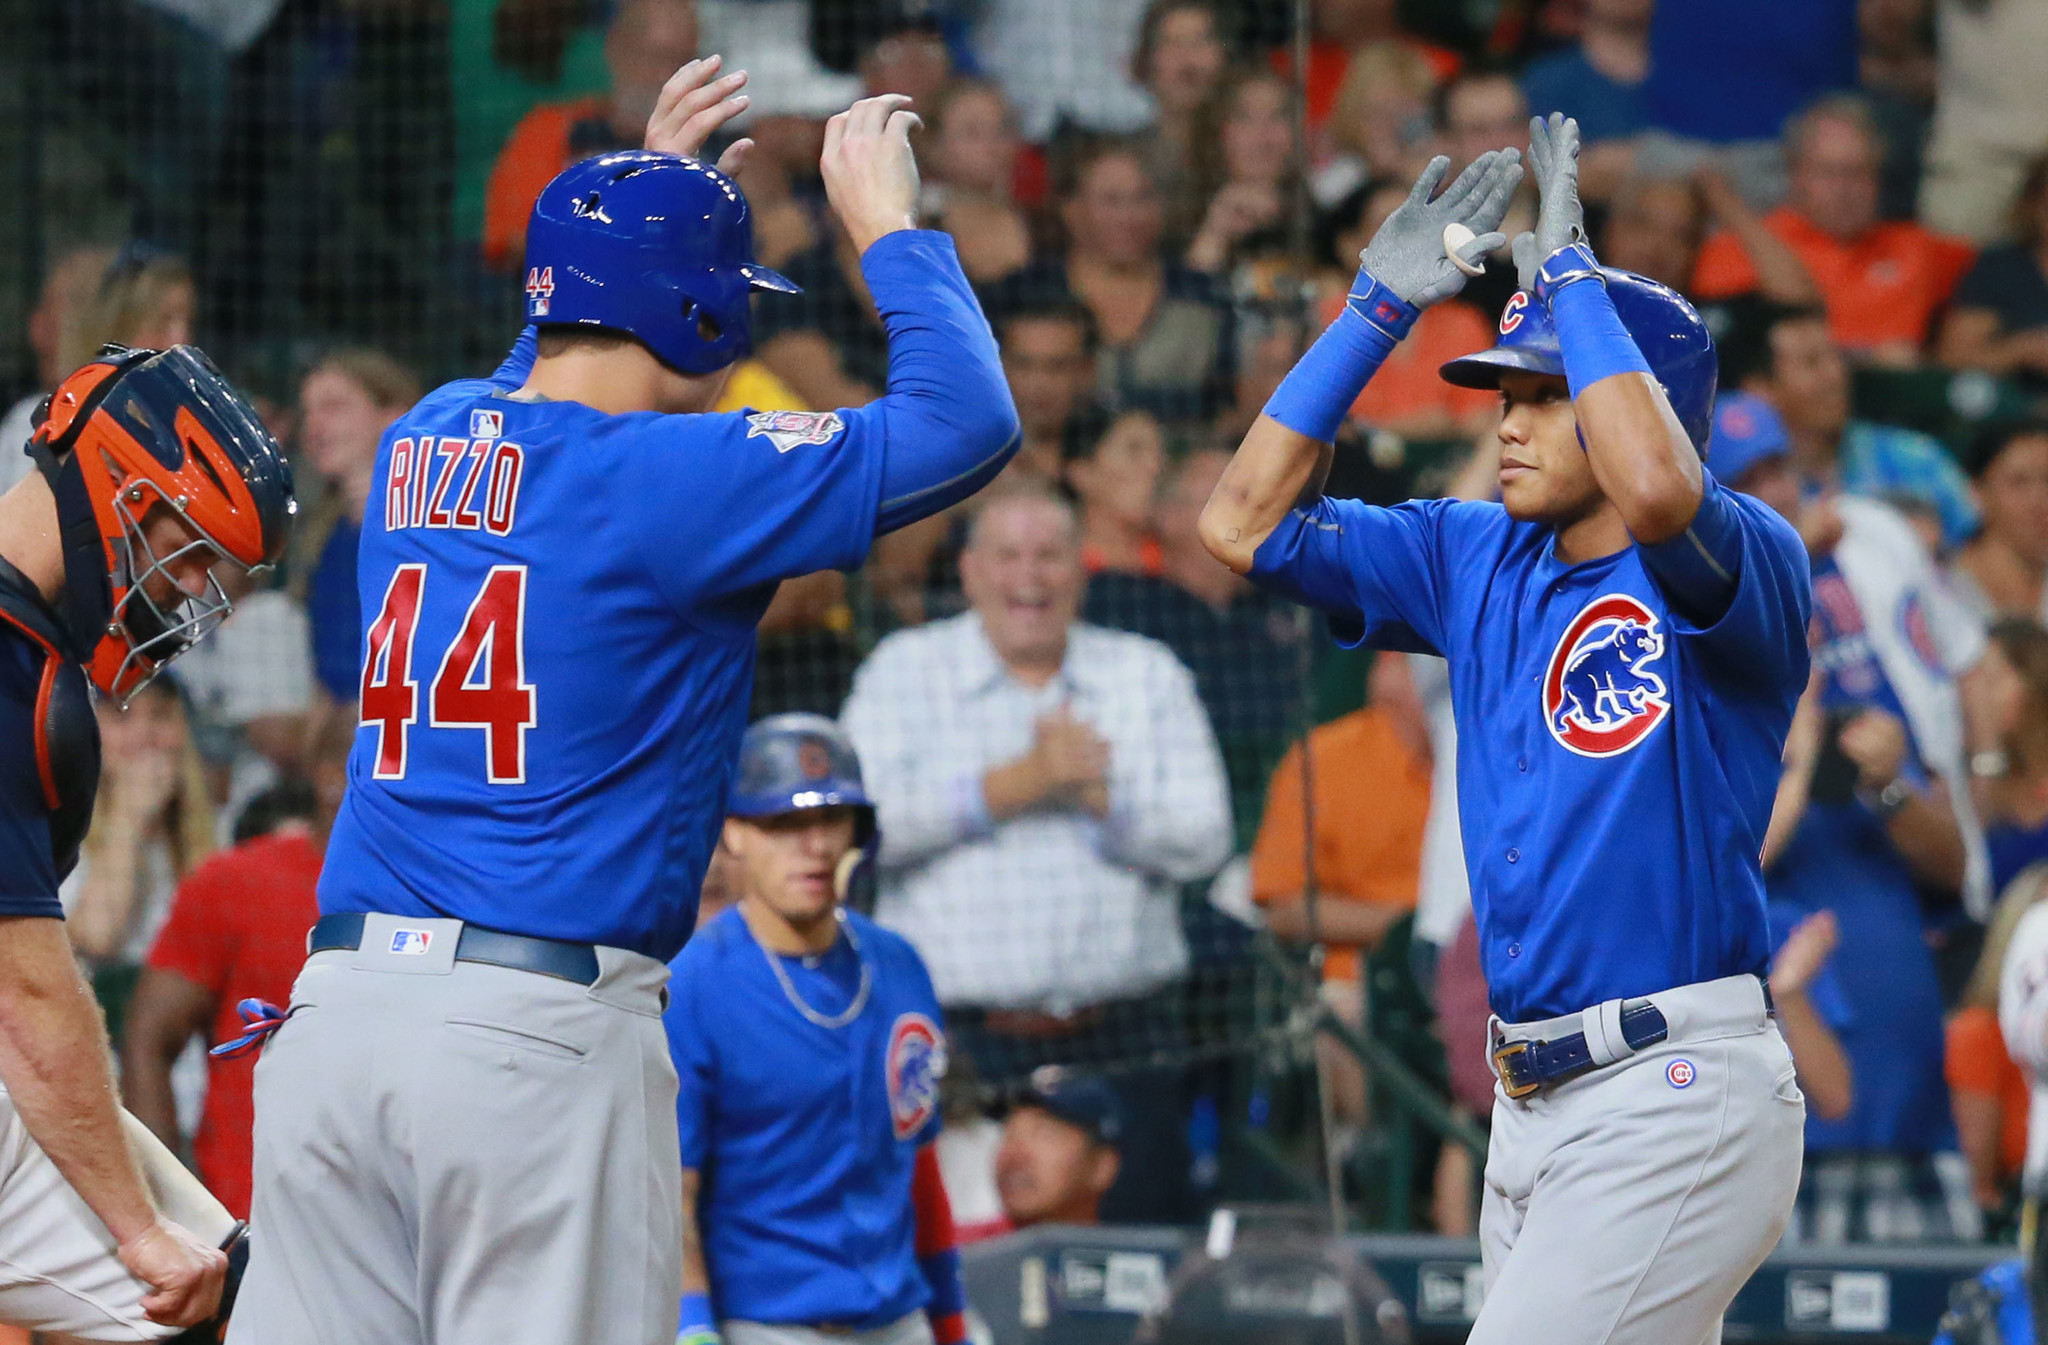 Ct-cubs-astros-eyeing-playoffs-spt-0912-20160911